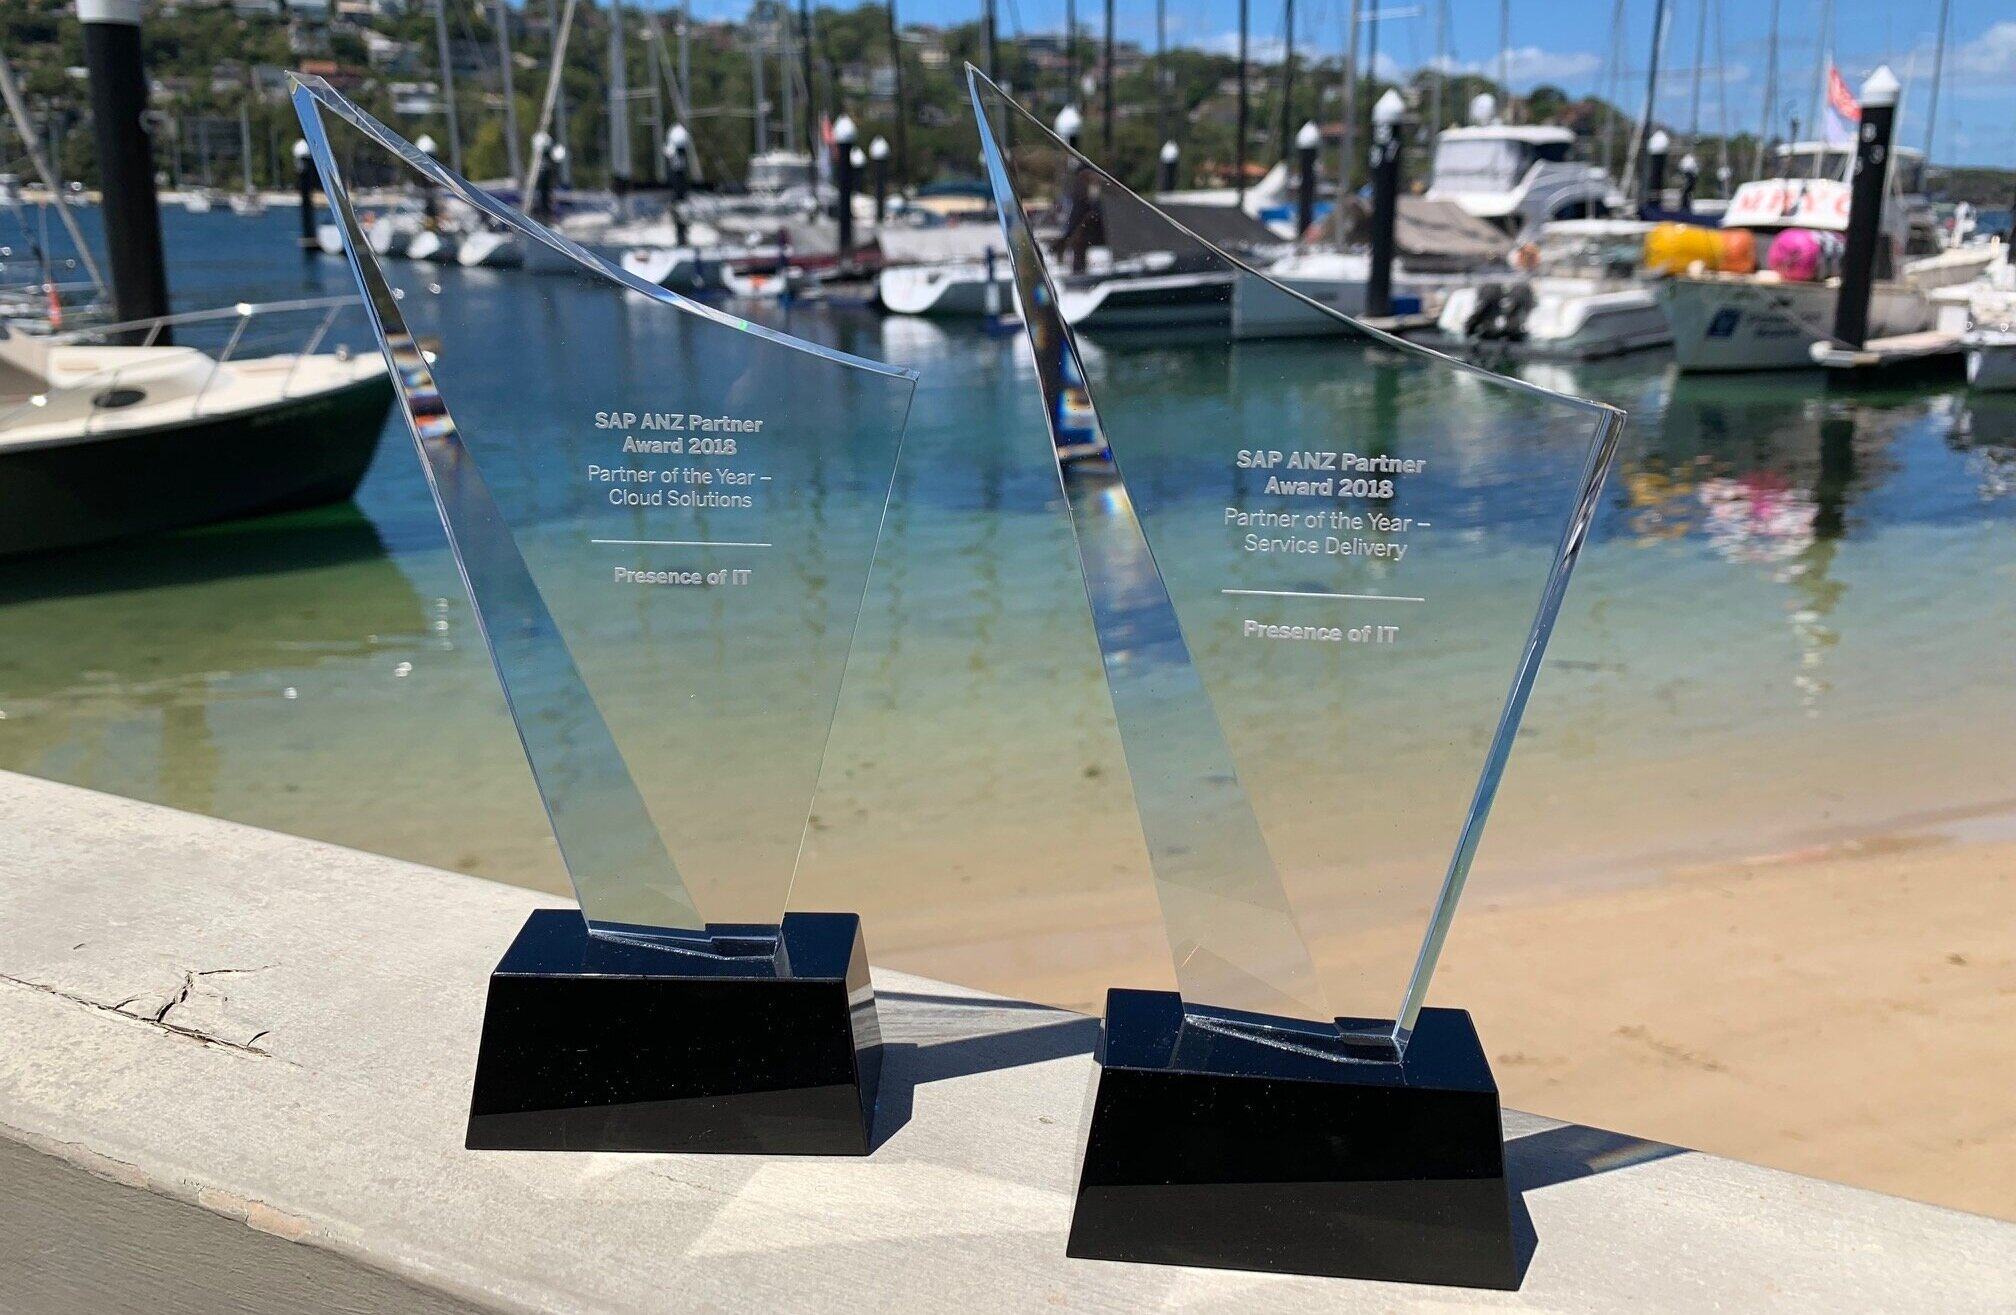 SAP ANZ 2018 Partner of the Year Awards